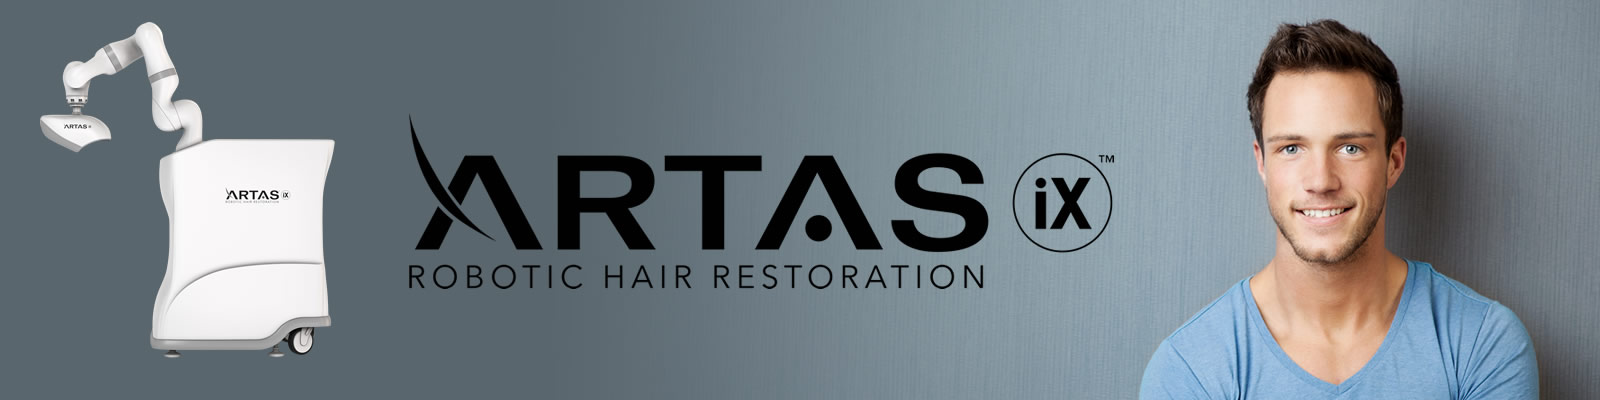 Artas Robot Hair Restoration NYC